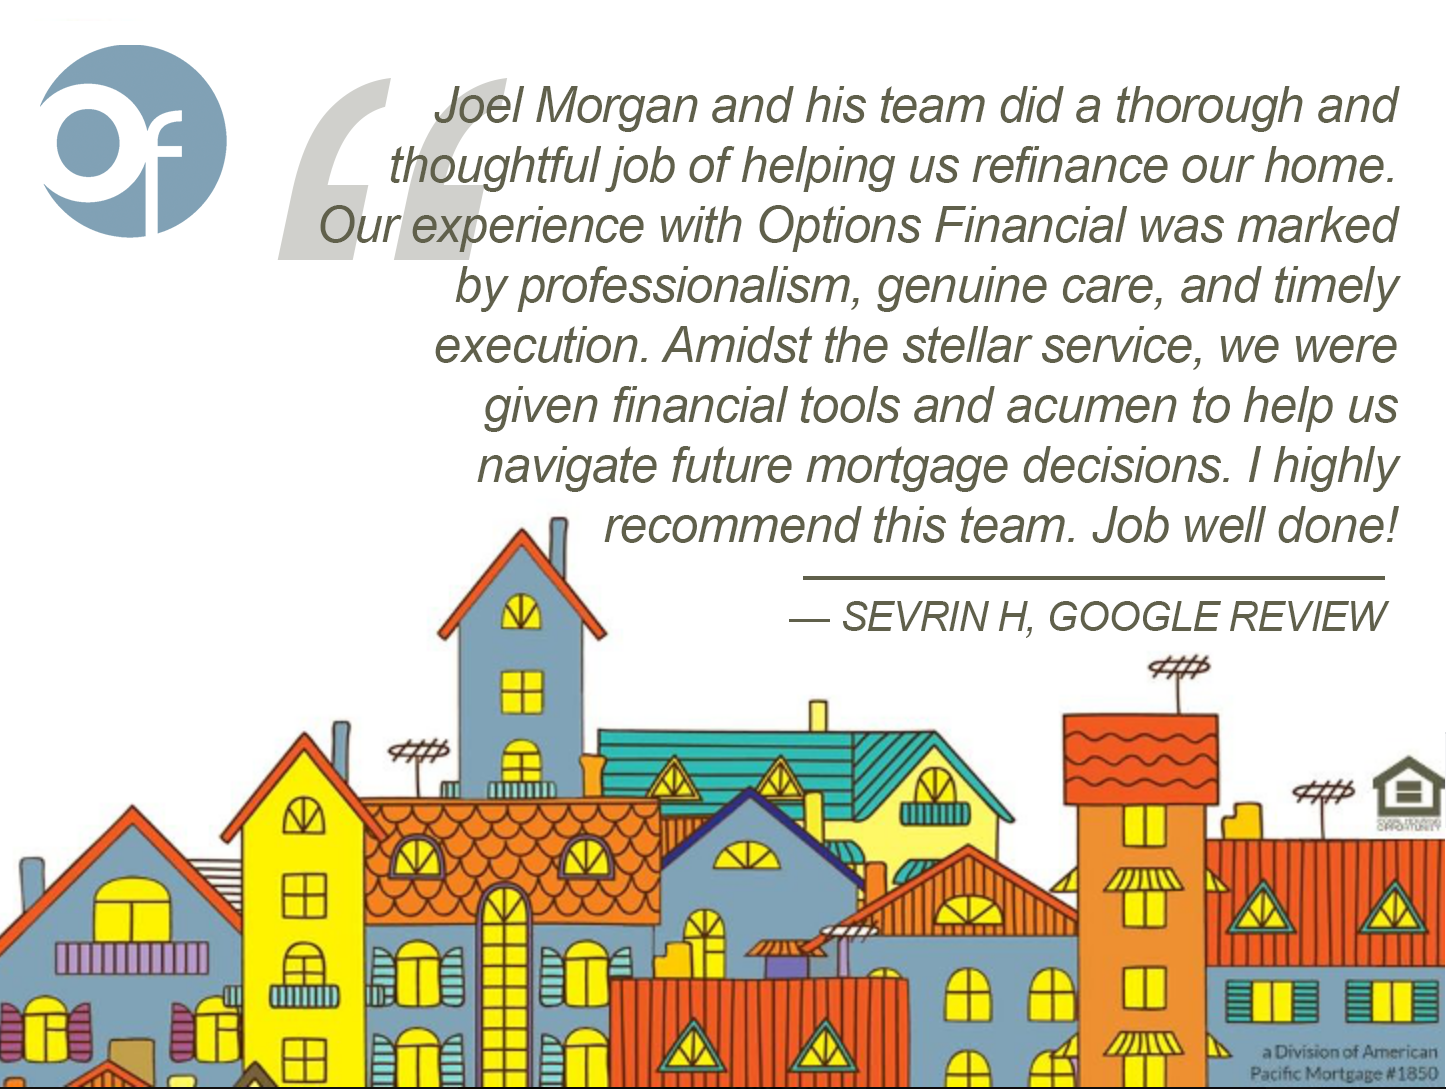 Joel Morgan and his team did a thorough and thoughtful job of helping us refinance our home. Our experience with Options Financial was marked by professionalism, genuine care, and timely execution. Amidst the stellar service, we were given financial tools and acumen to help us navigate future mortgage decisions. I highly recommend this team. Job well done!